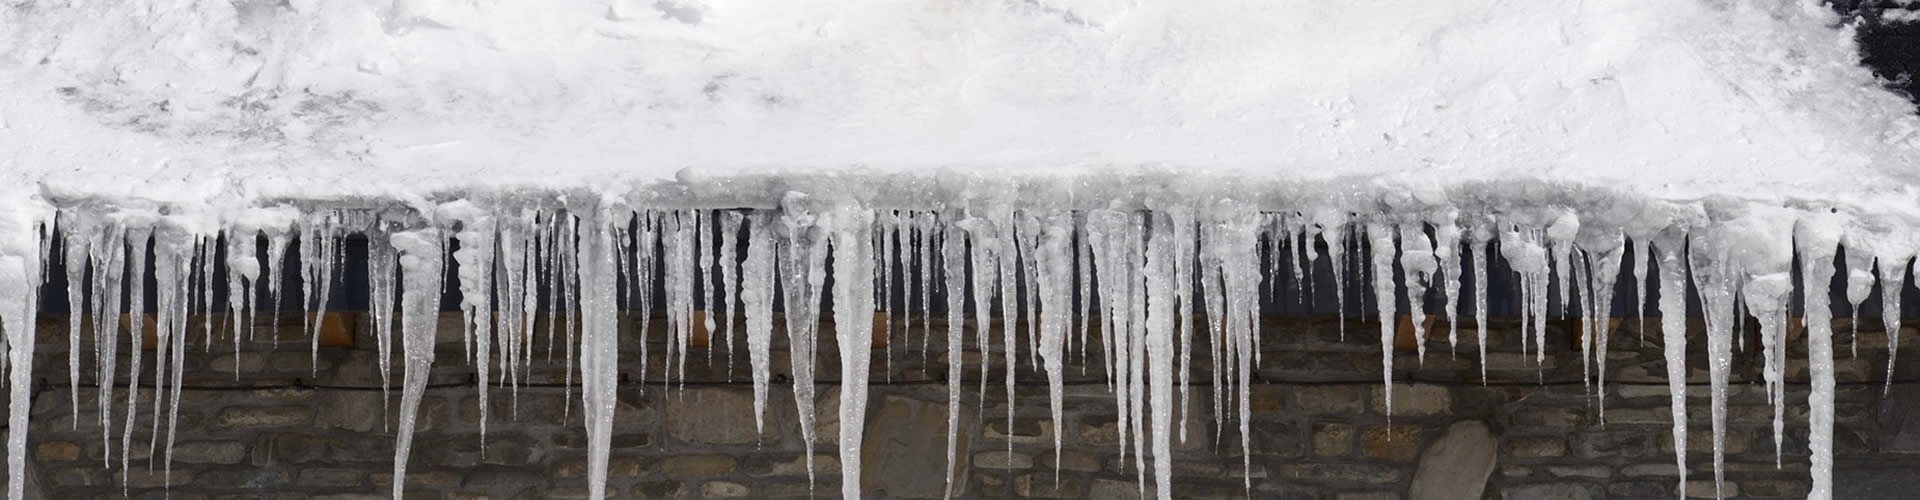 how to prevent roofing leaks caused by ice